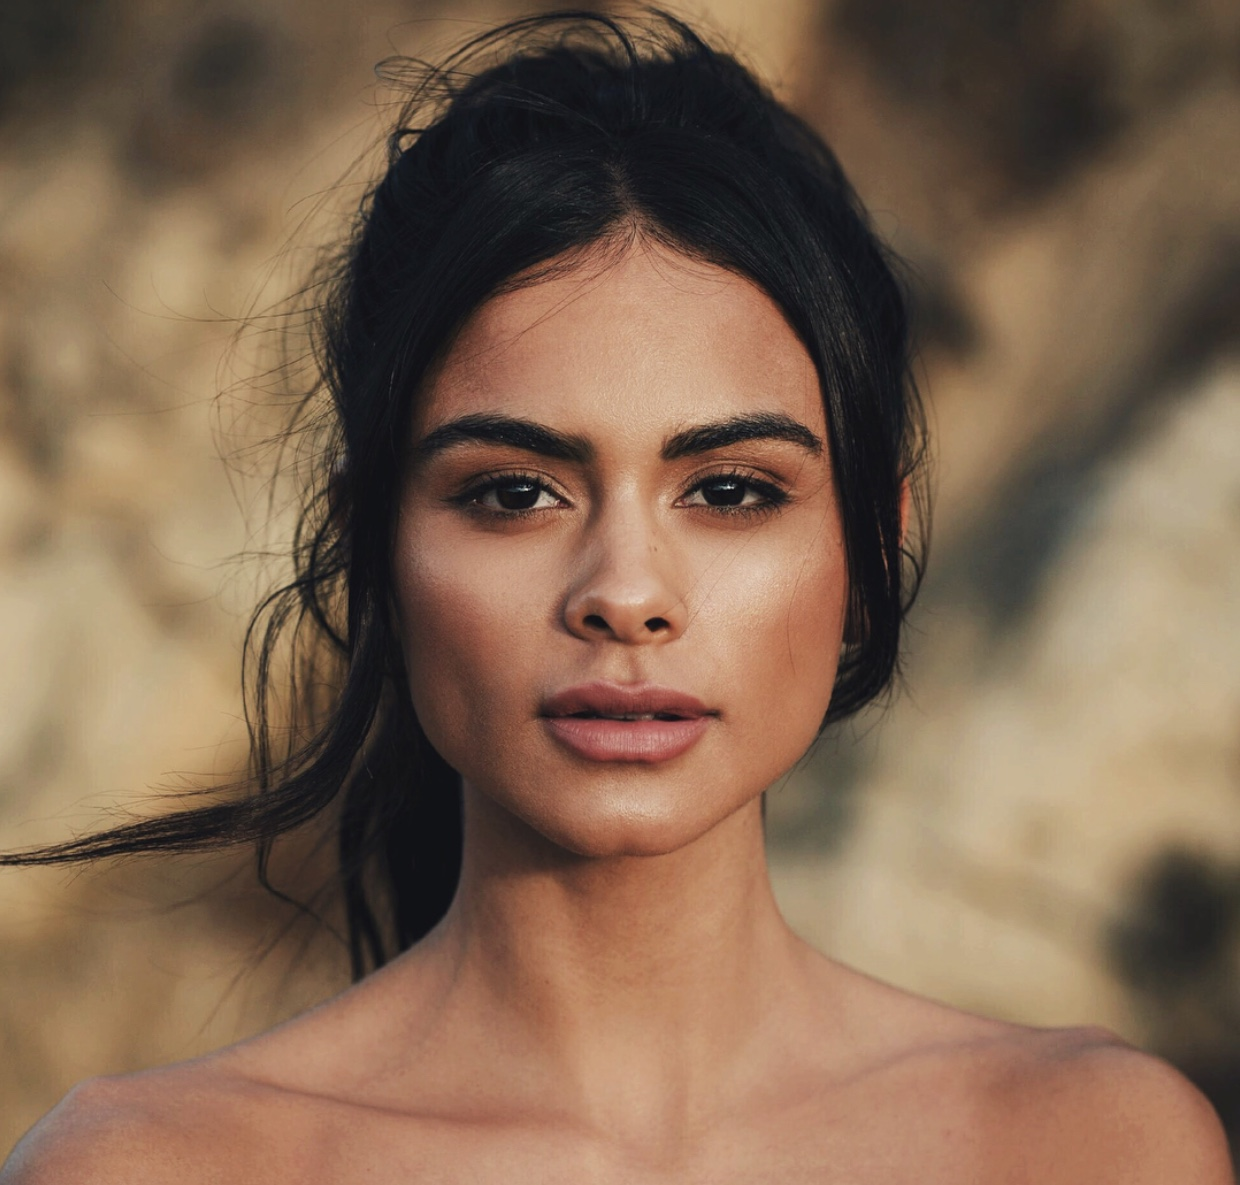 Banish Clogged Pores With Model Sophia Miacova's Vegan Skincare Routine